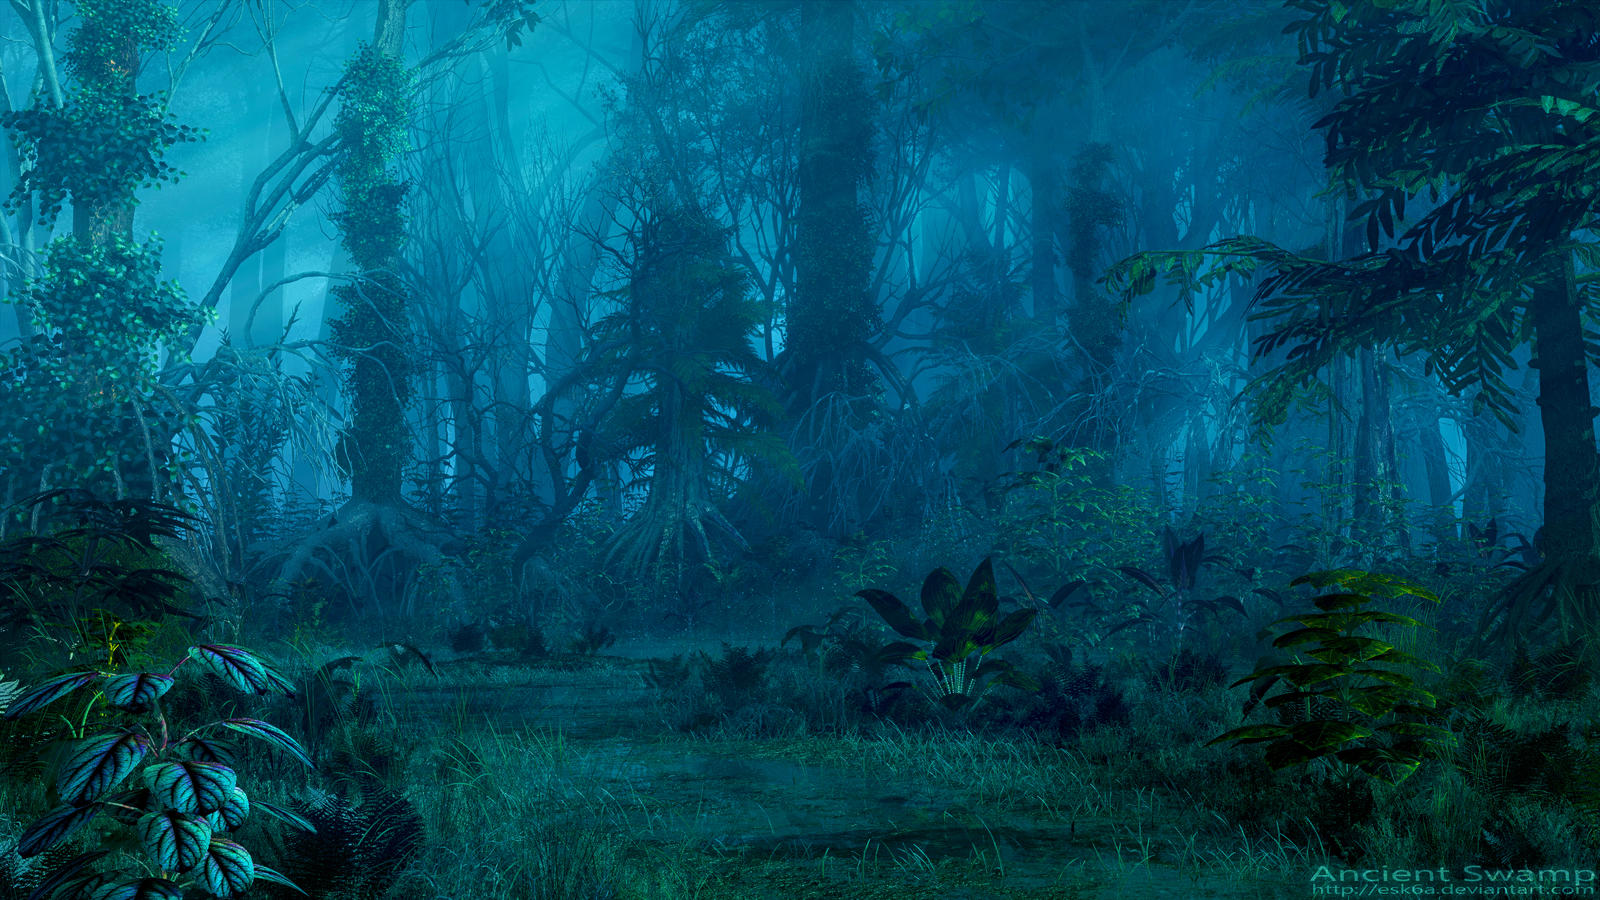 Ancient Swamp by esk6a